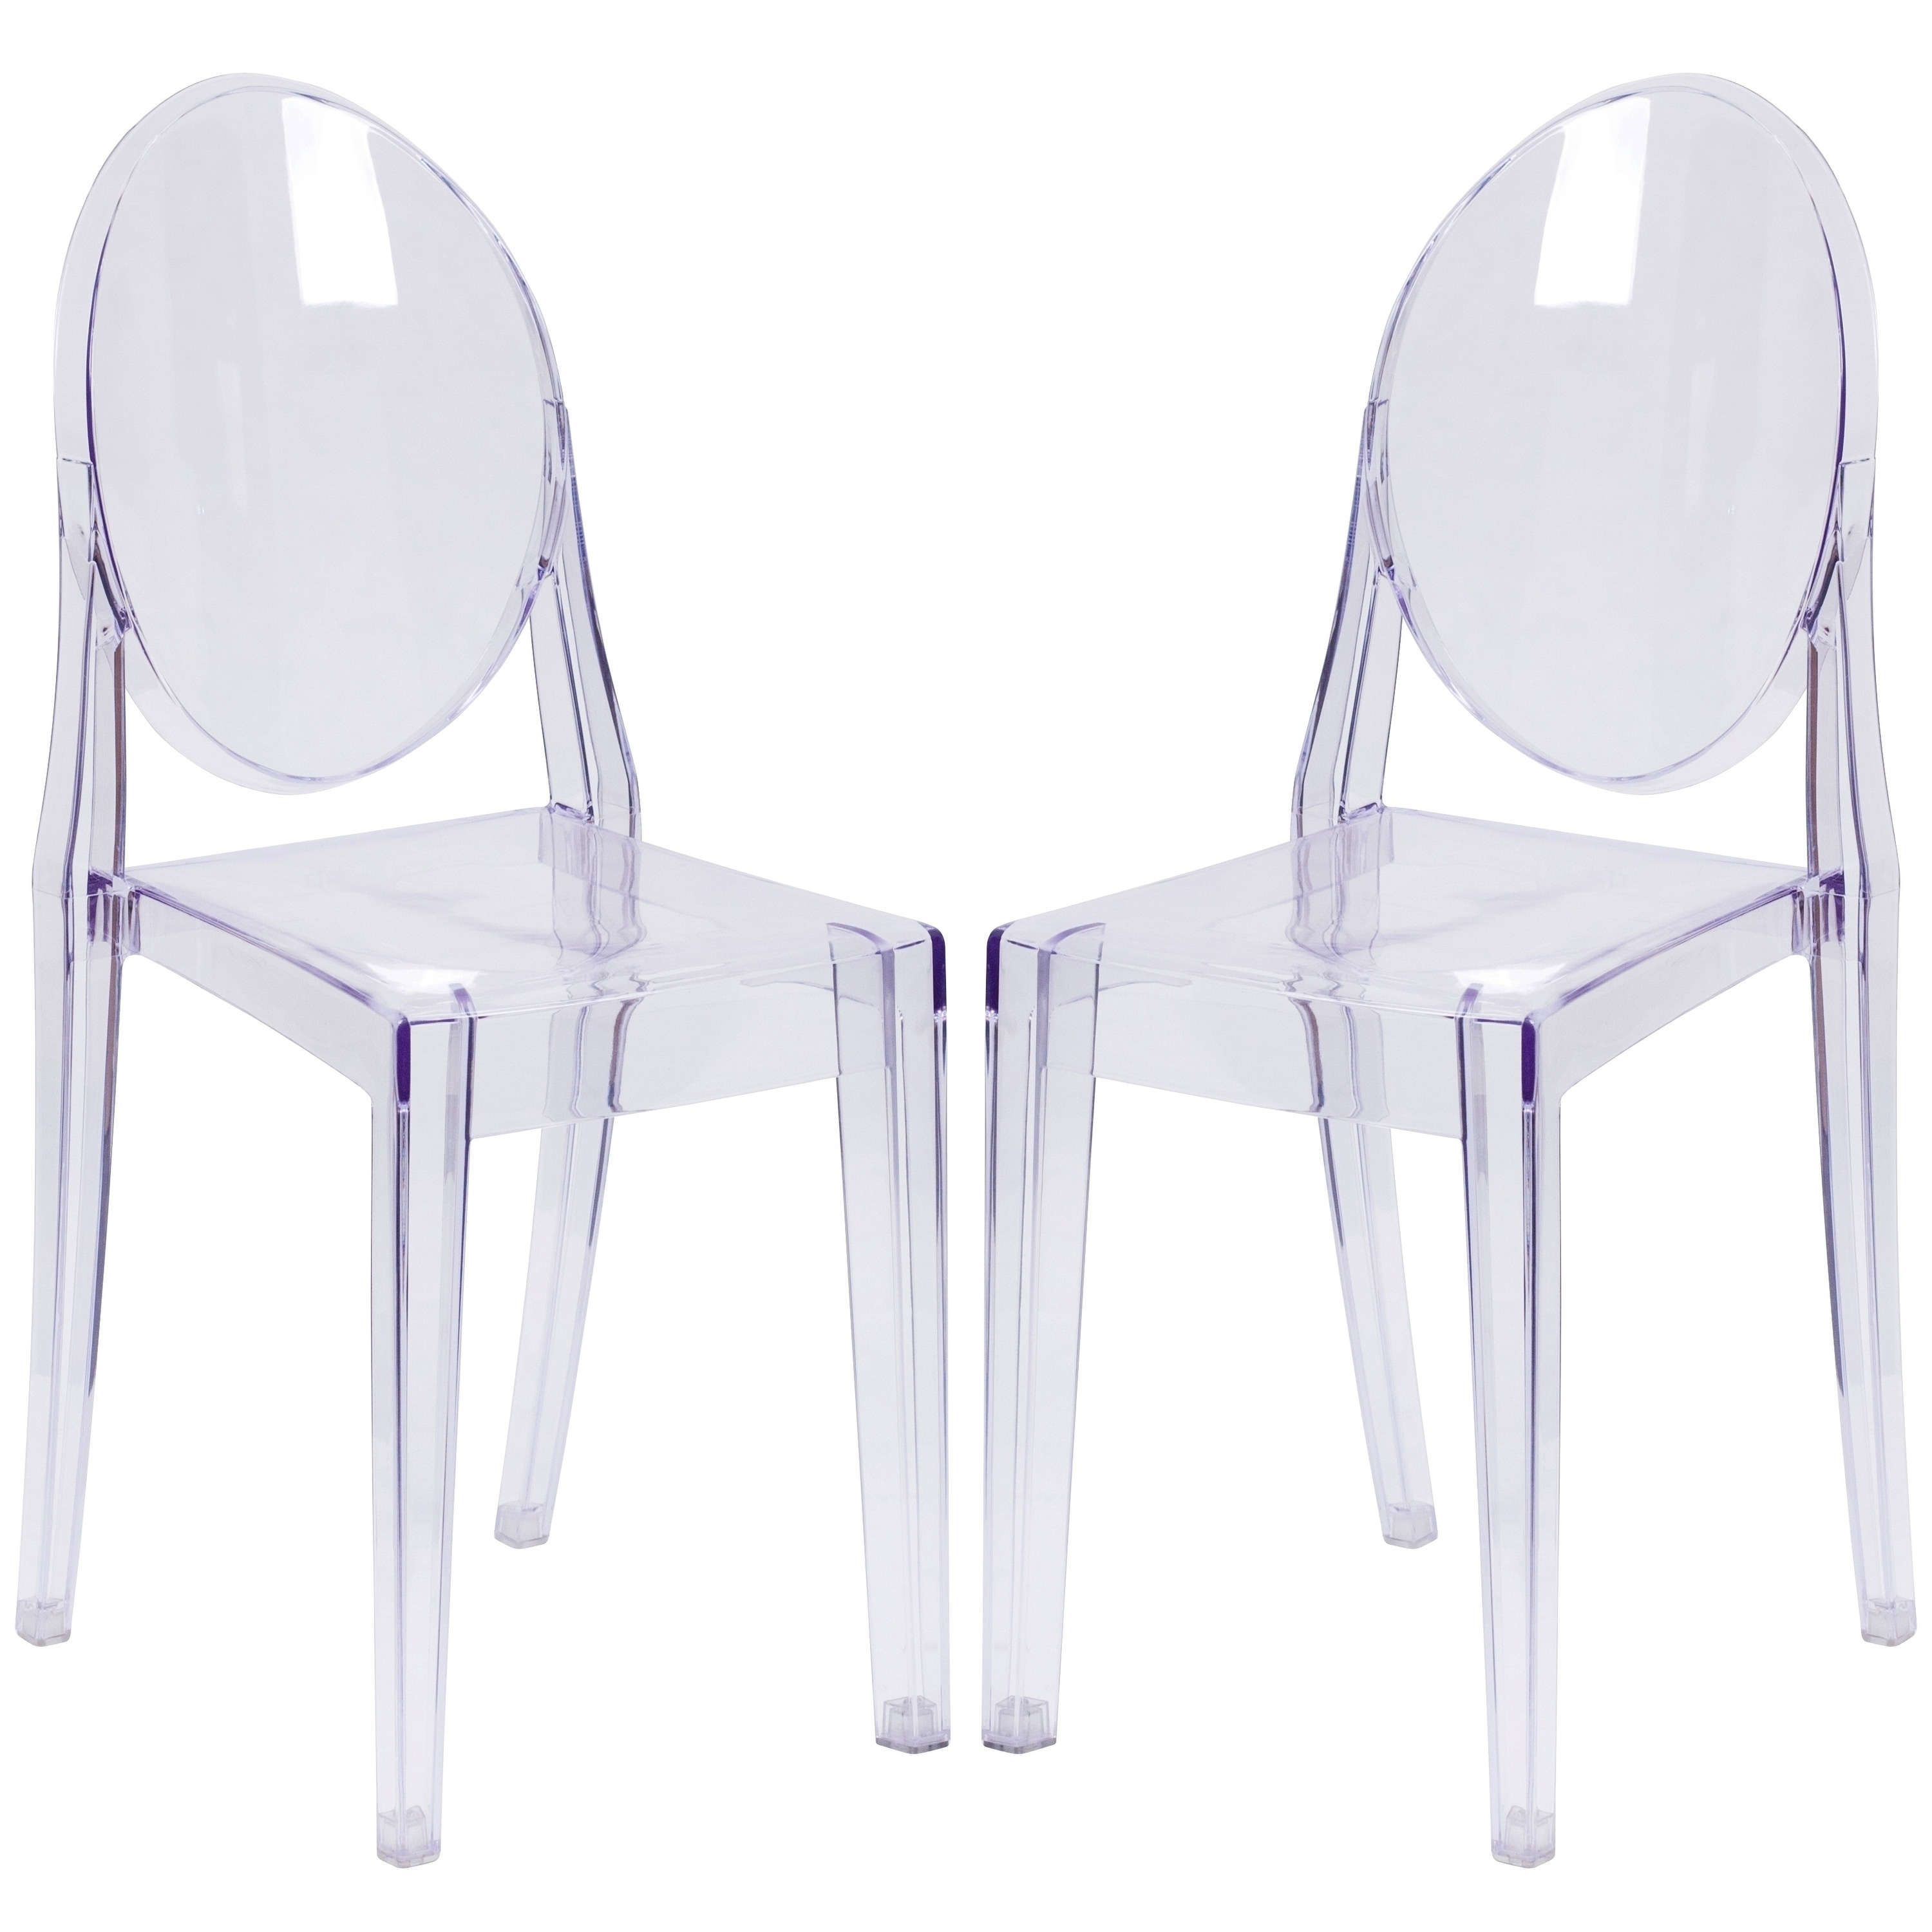 A Line Furniture Ghost Design Round Back Transparent Crystal Chair